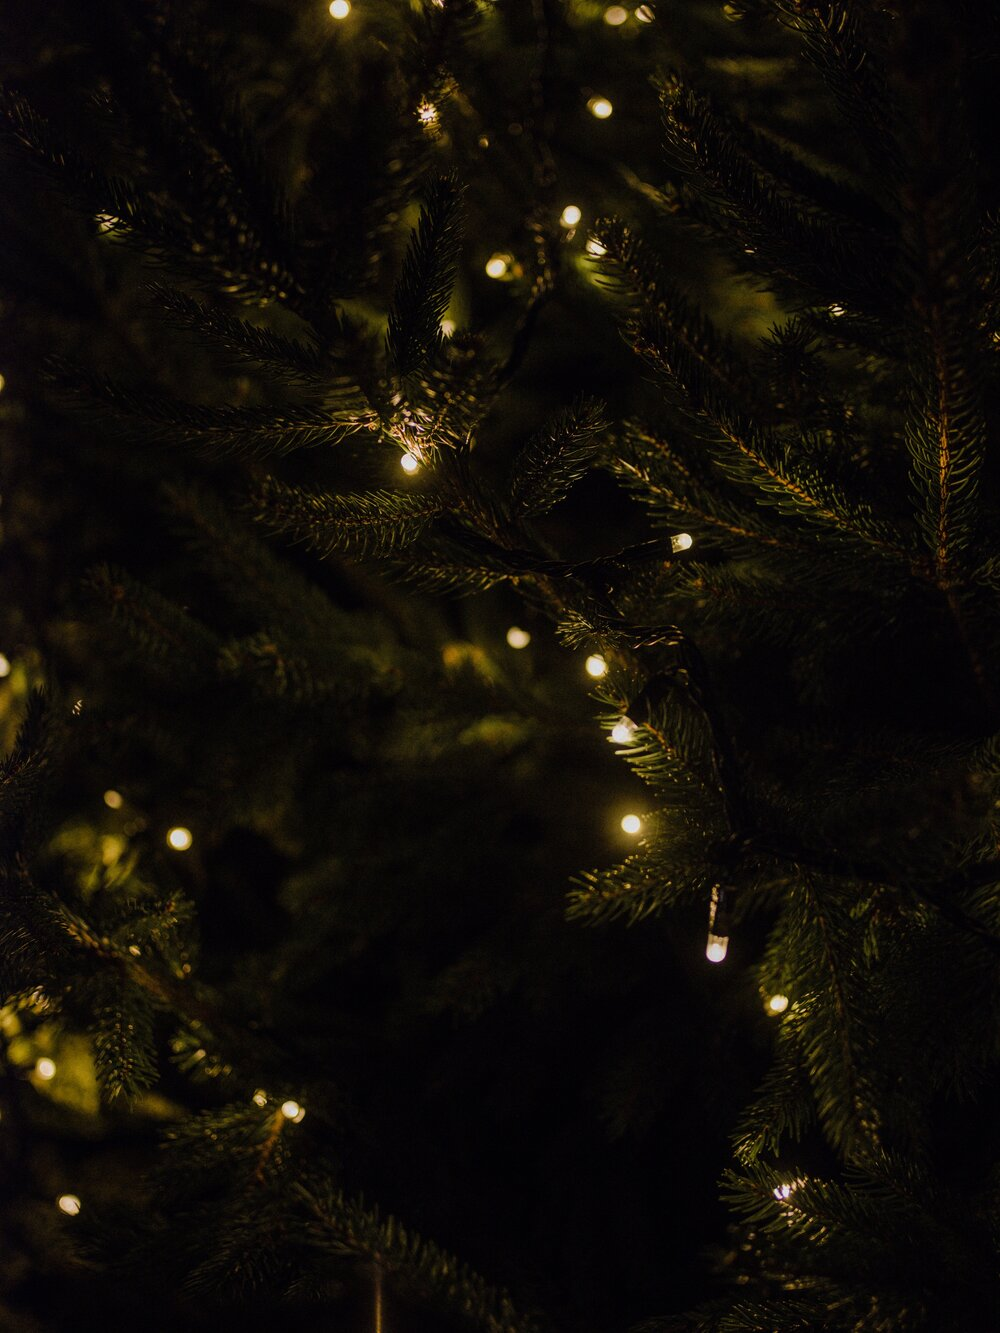 Recycling just one aluminium saves enough energy to run Christmas tree lights for two hours.